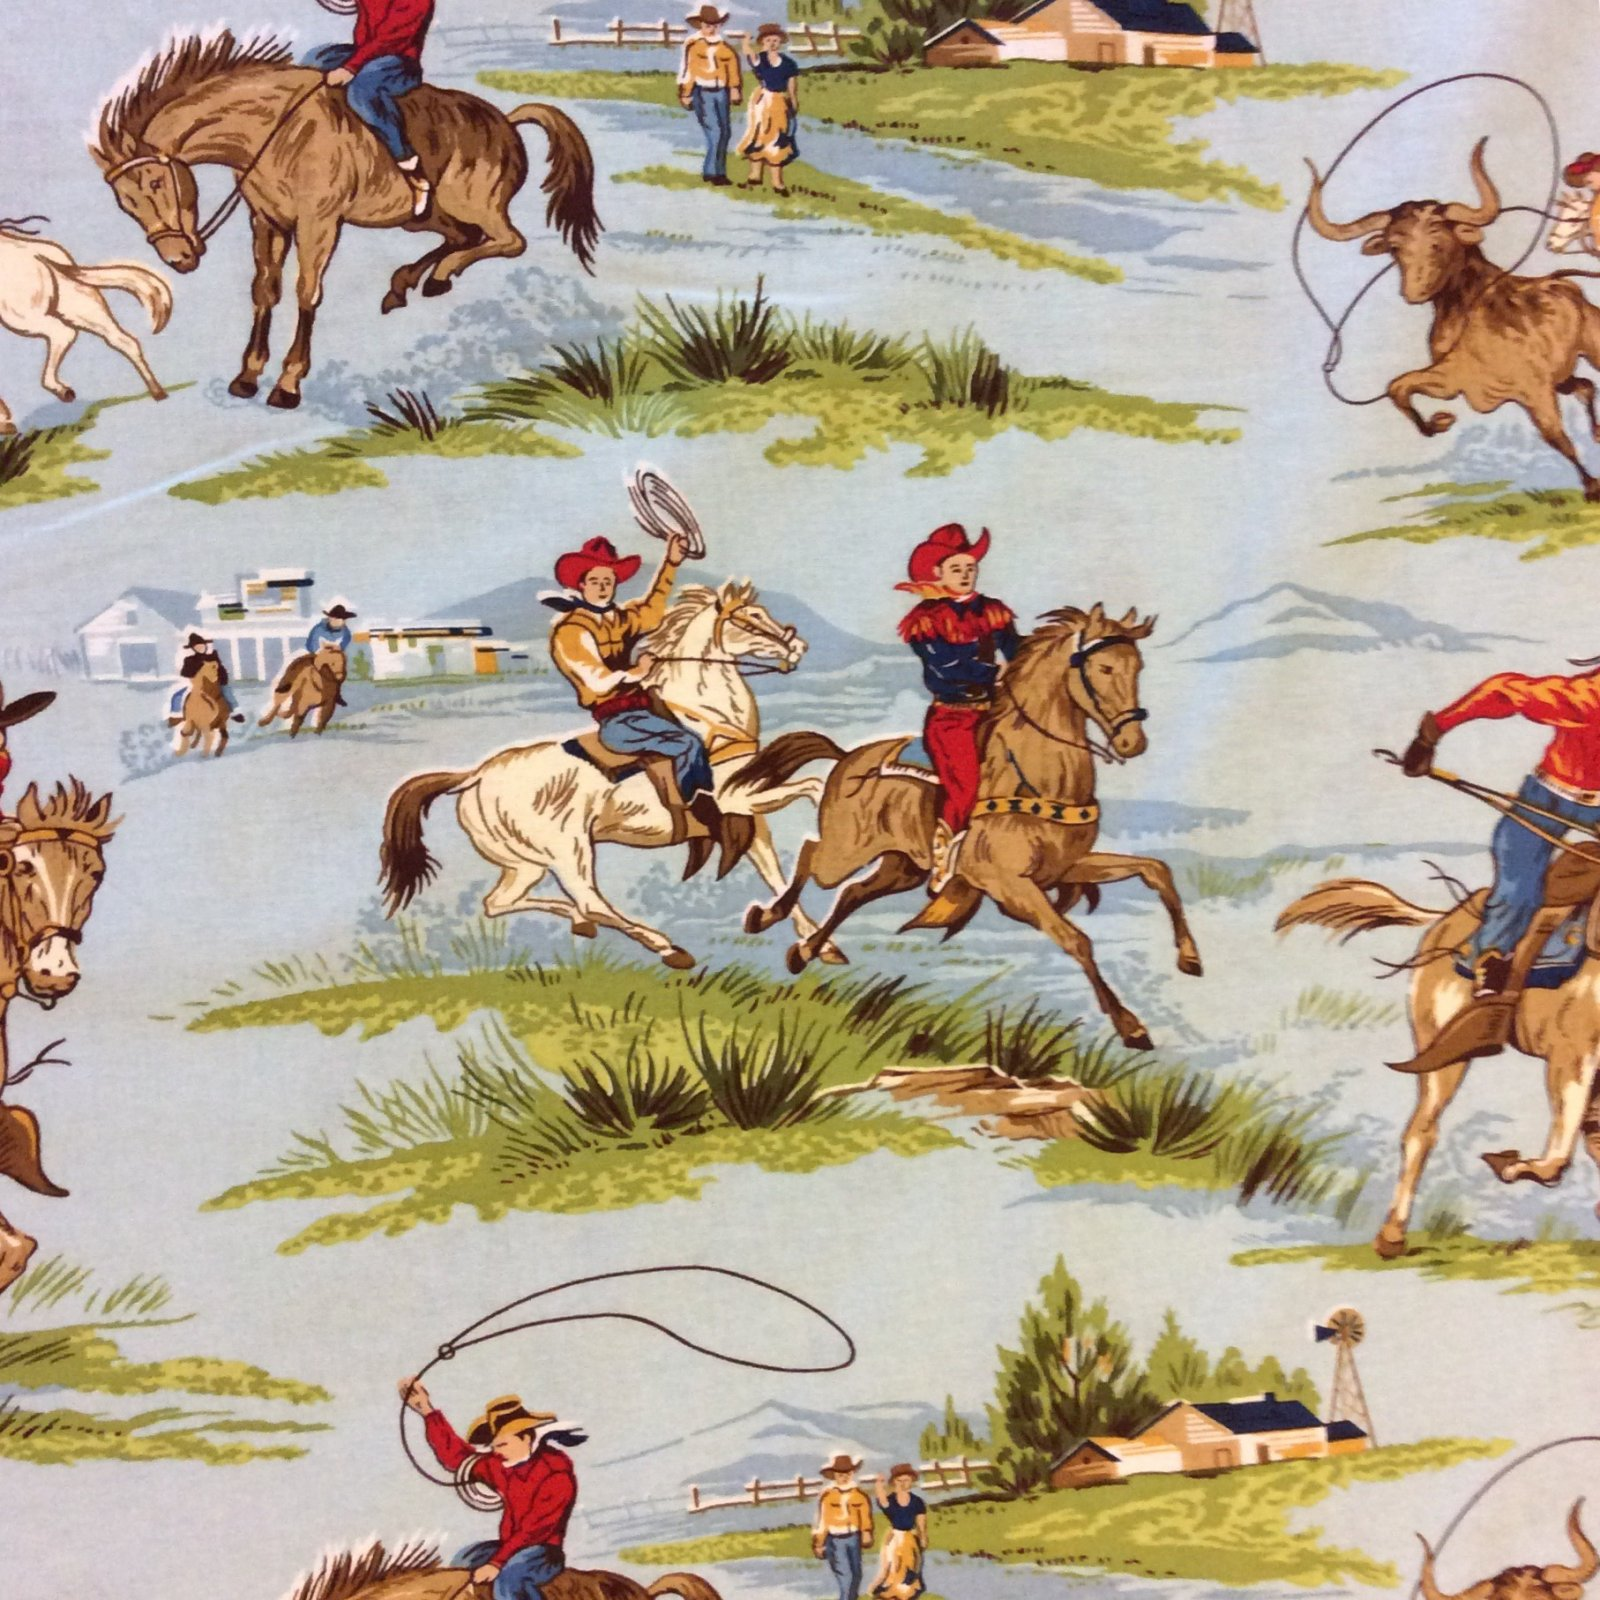 Wild West Cowboy Cattle Ranch Horses Farm Ranch Hand Lasso Rodeo Cowboys Cotton Quilt Fabric MD276